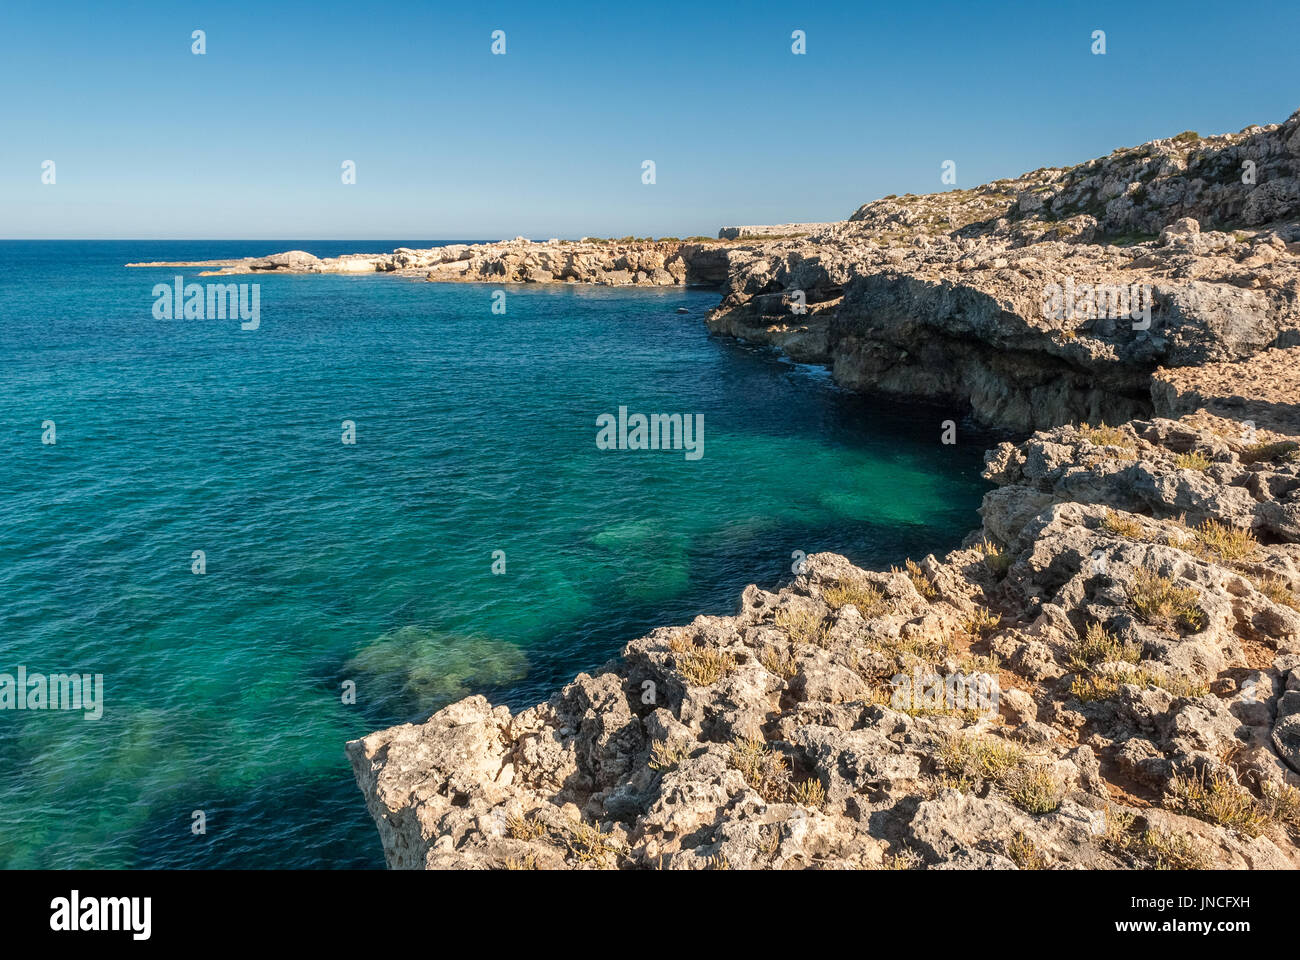 Coastline in the natural reserve of Plemmirio, near Siracusa (eastern Sicily) - Stock Image